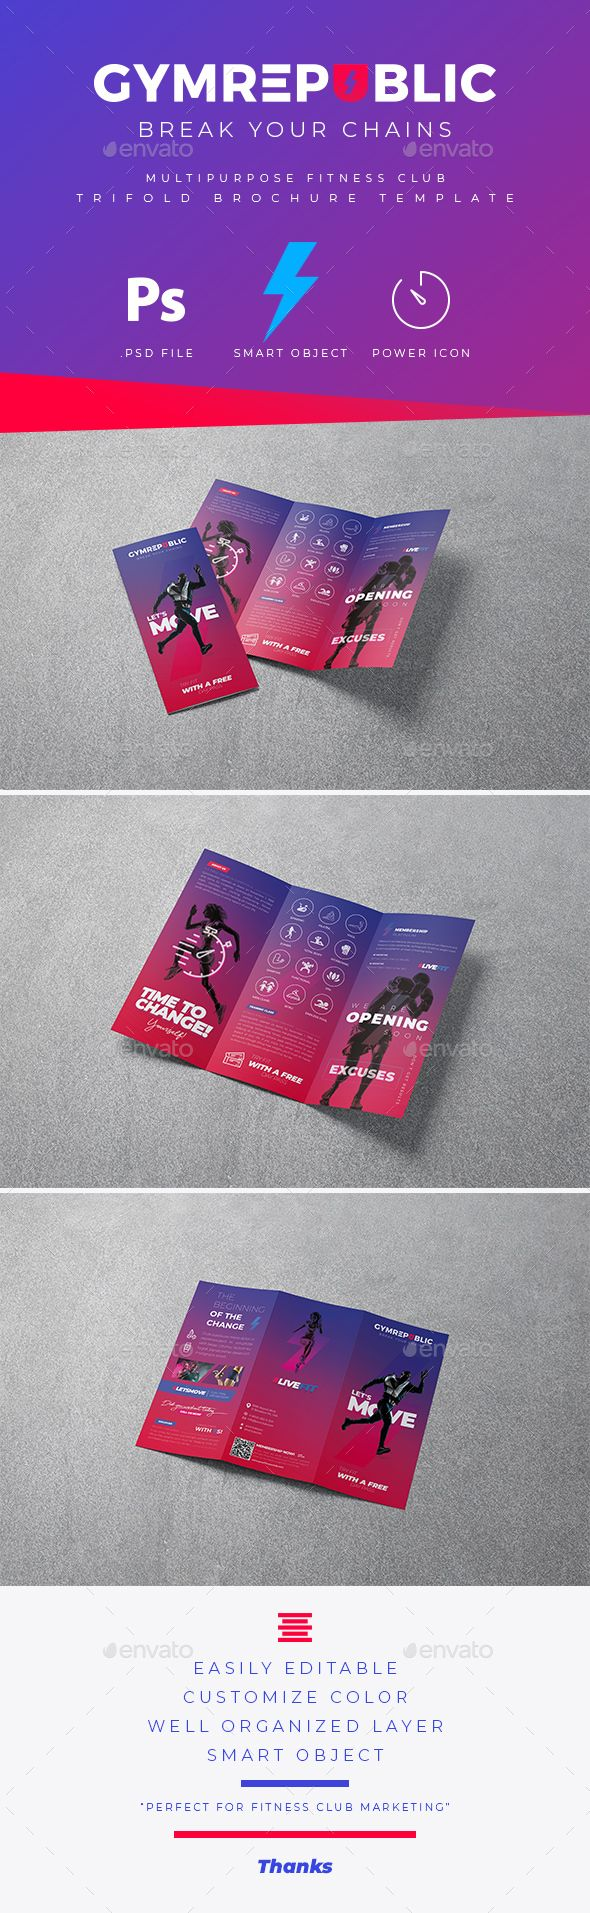 #Fitness #GYM #Trifold #Brochure #Templates - #Sports #Events. Powerful and Creative Fitness GYM trifold brochure templates is a great tool for promoting your fitness club also useful for a fitness studio or a gym. You can use it for fitness club, crossfit, functional training, gym, personal trainer, fitness events, fitness marketing, kickboxing, fitness activities or for membership sales. Fully editable template, you can add images of your choice and change the texts.